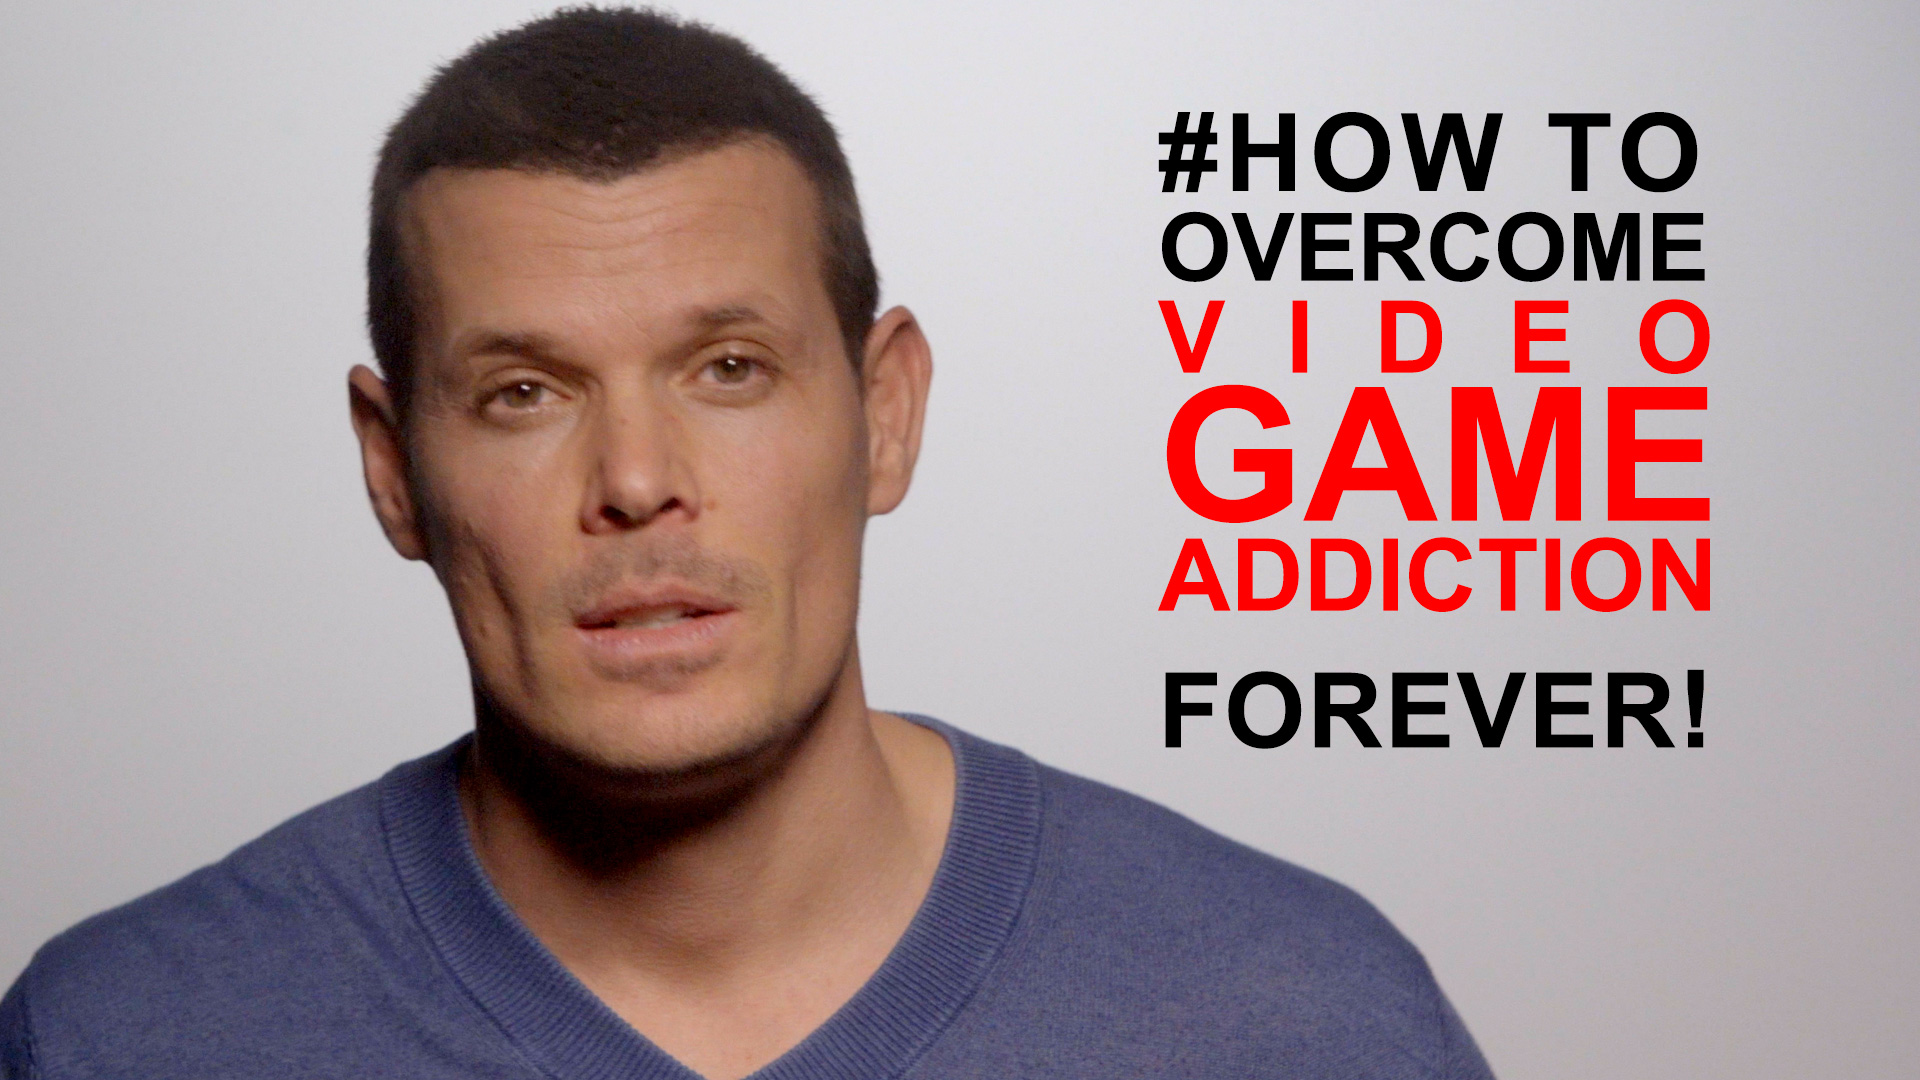 overcoming video game addiction